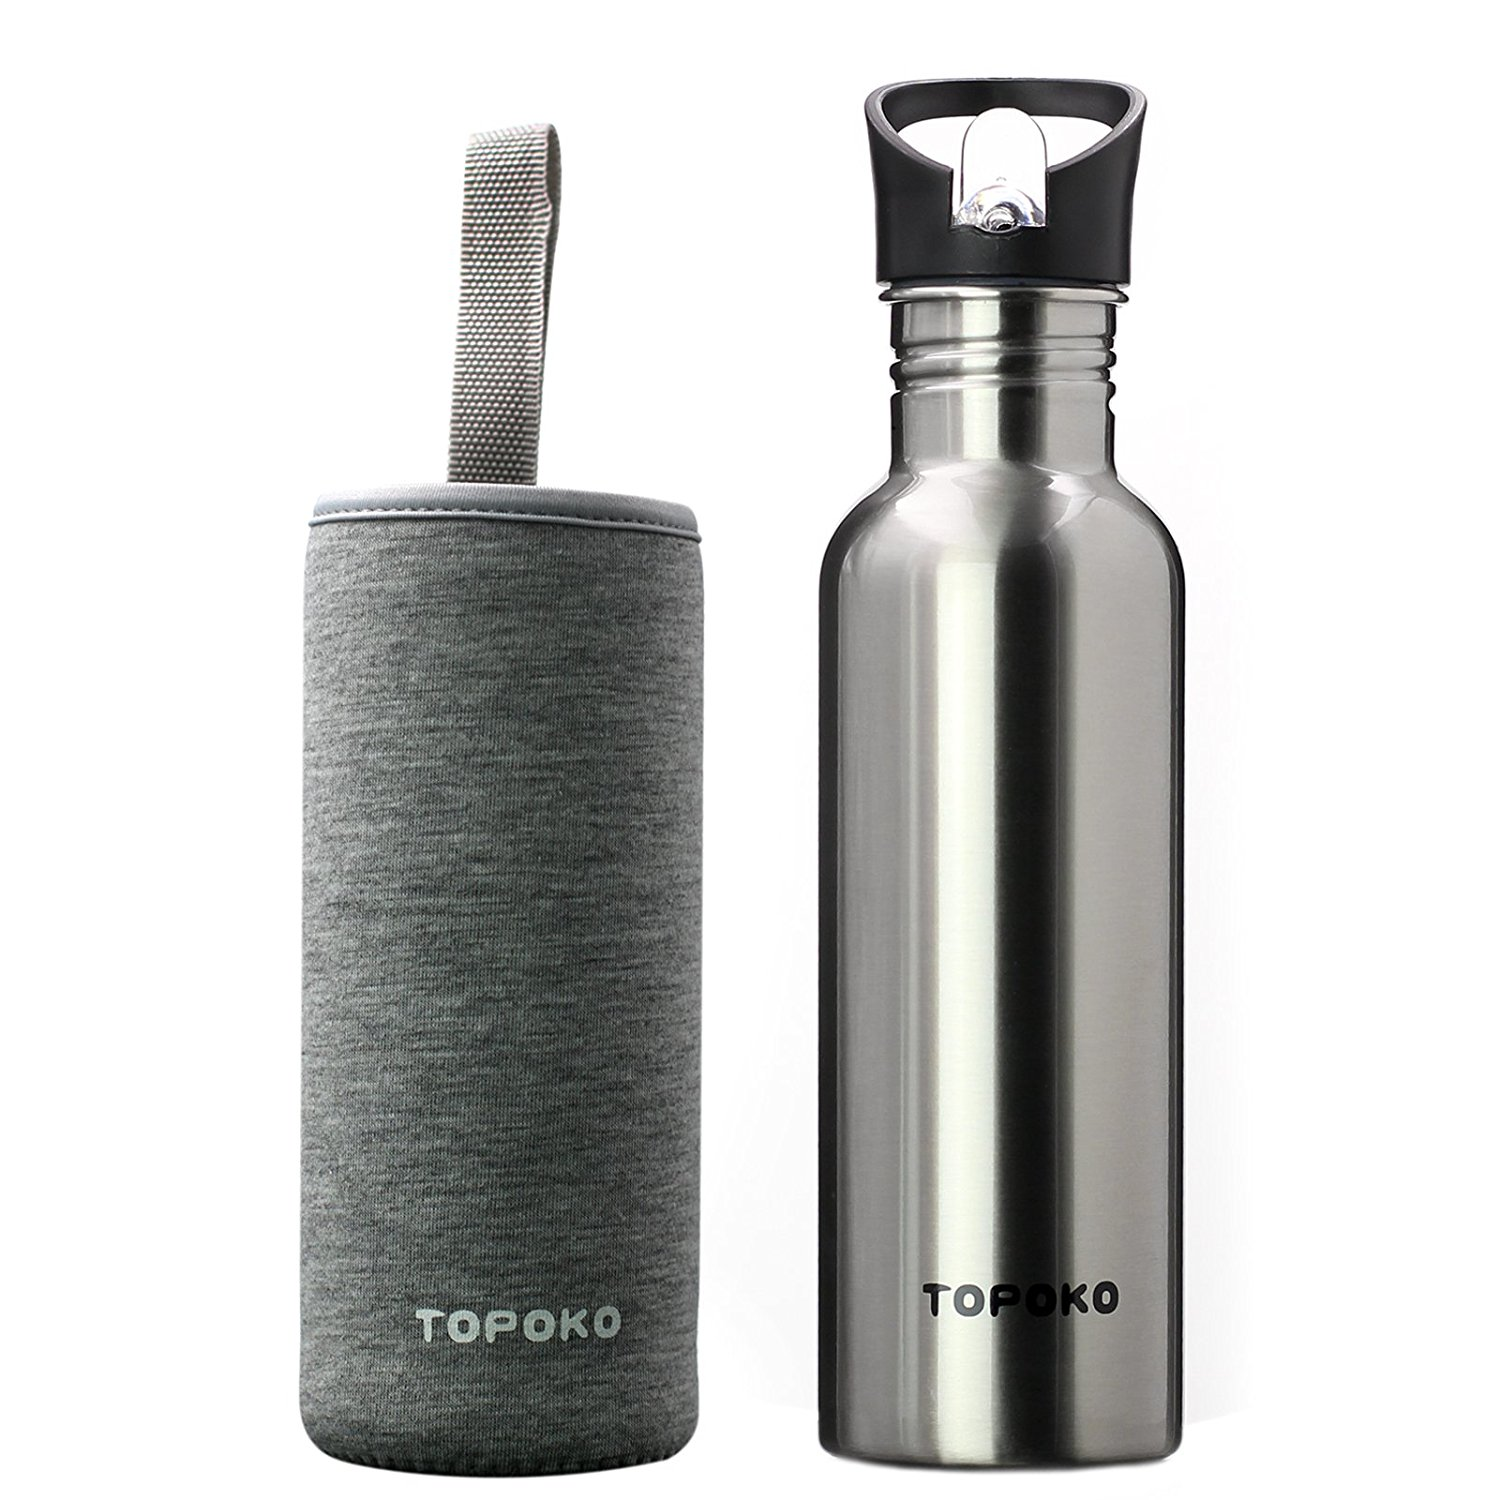 TOPOKO 25 Oz Single-Layer Stainless Steel Water Bottle Sports Bottle Flip Top Spout With Black and Grey Nylon Sleeve